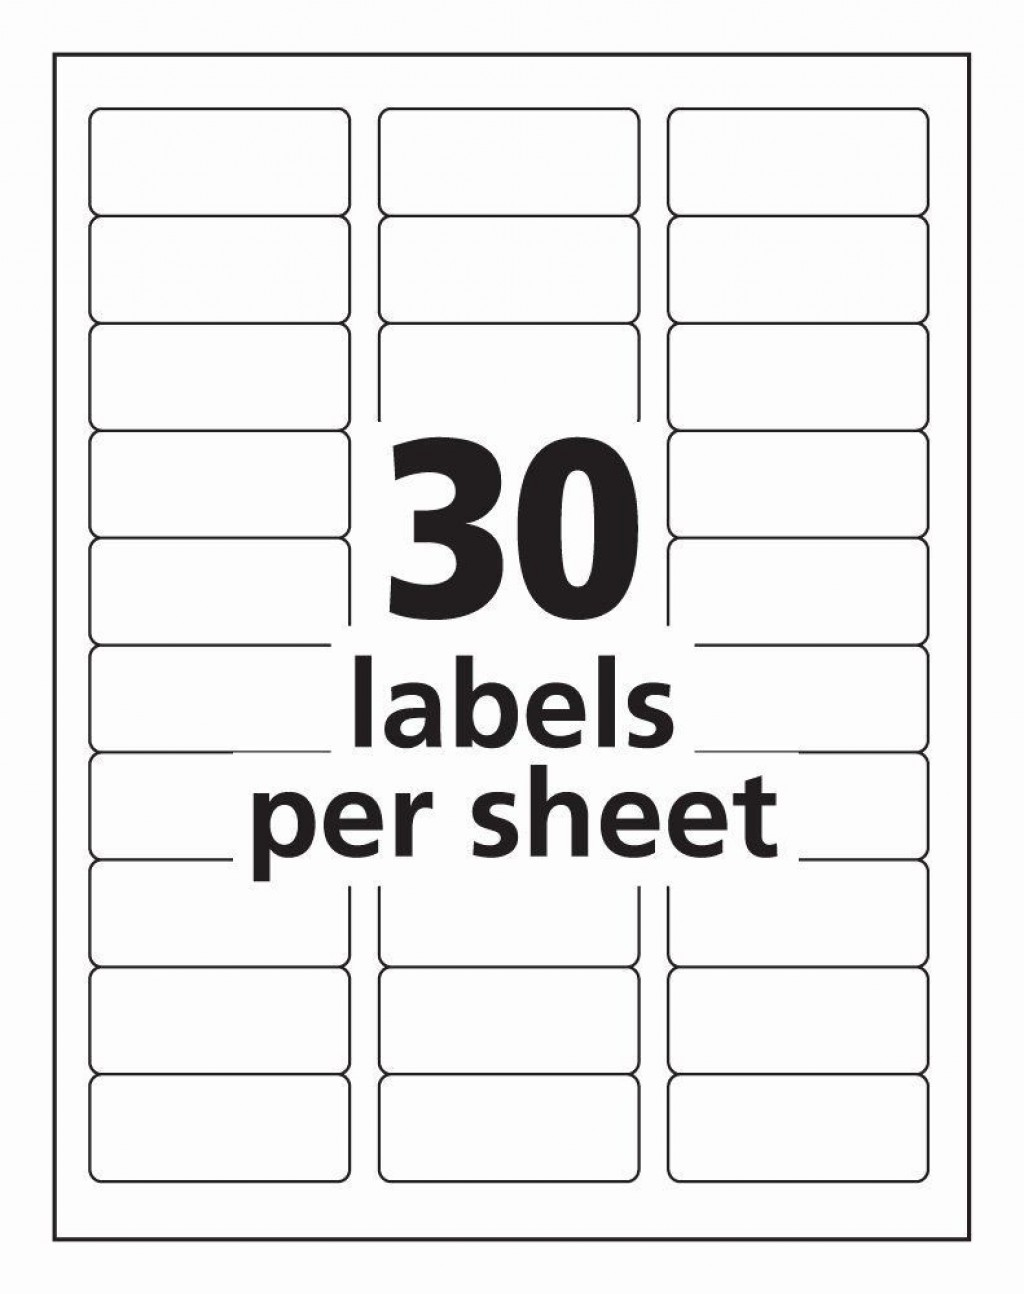 003 Staggering Label Template For Word High Def  Avery 14 Per Sheet Free 21 A4Large